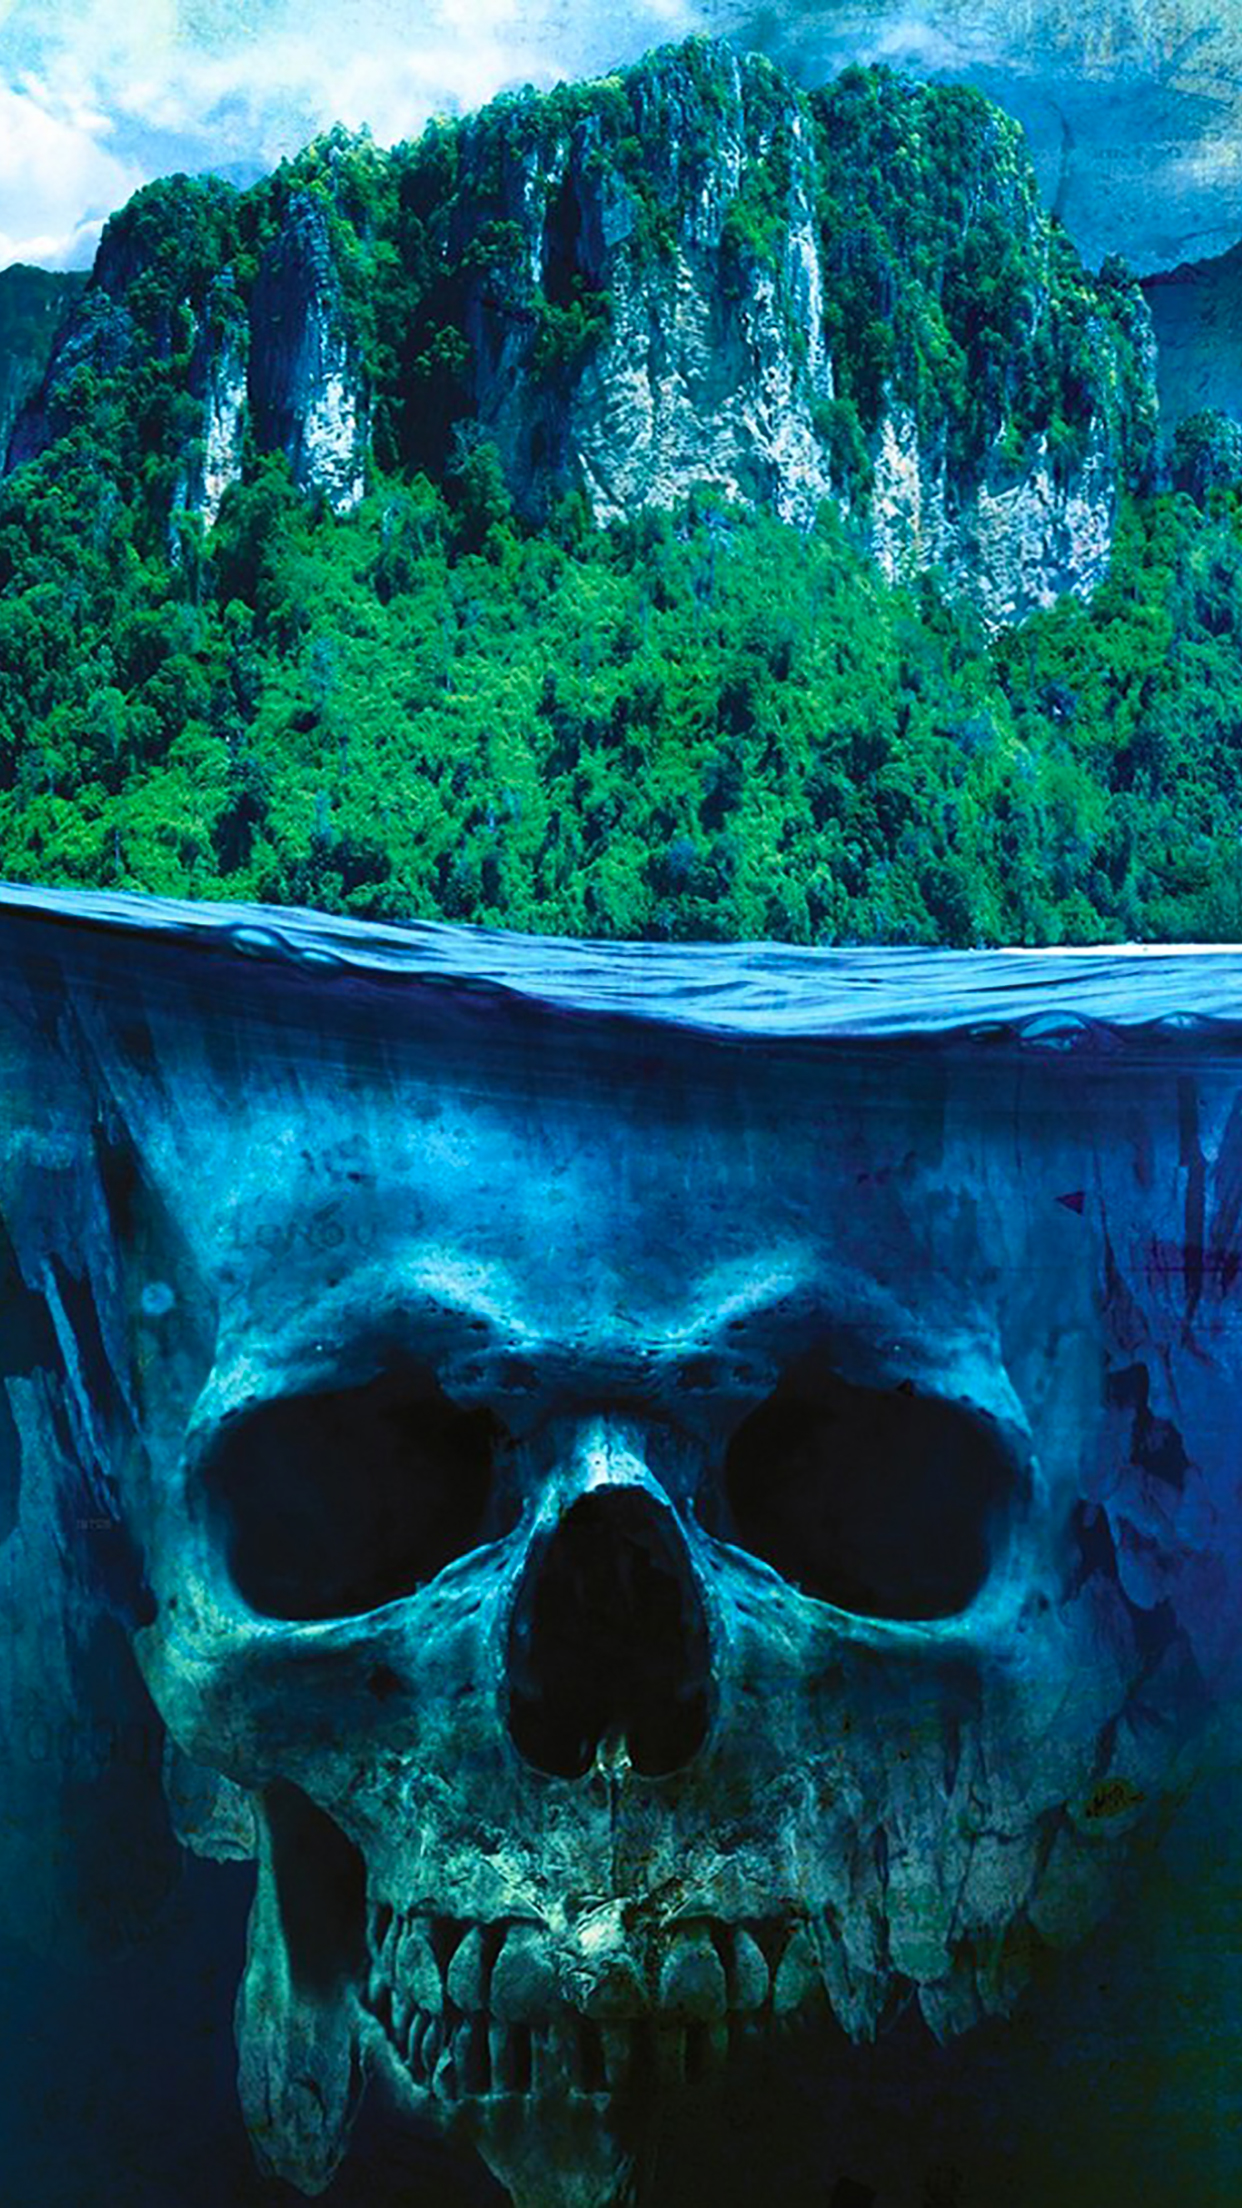 Graffiti Wallpaper For Iphone 5 Far Cry Skull Wallpaper For Iphone X 8 7 6 Free